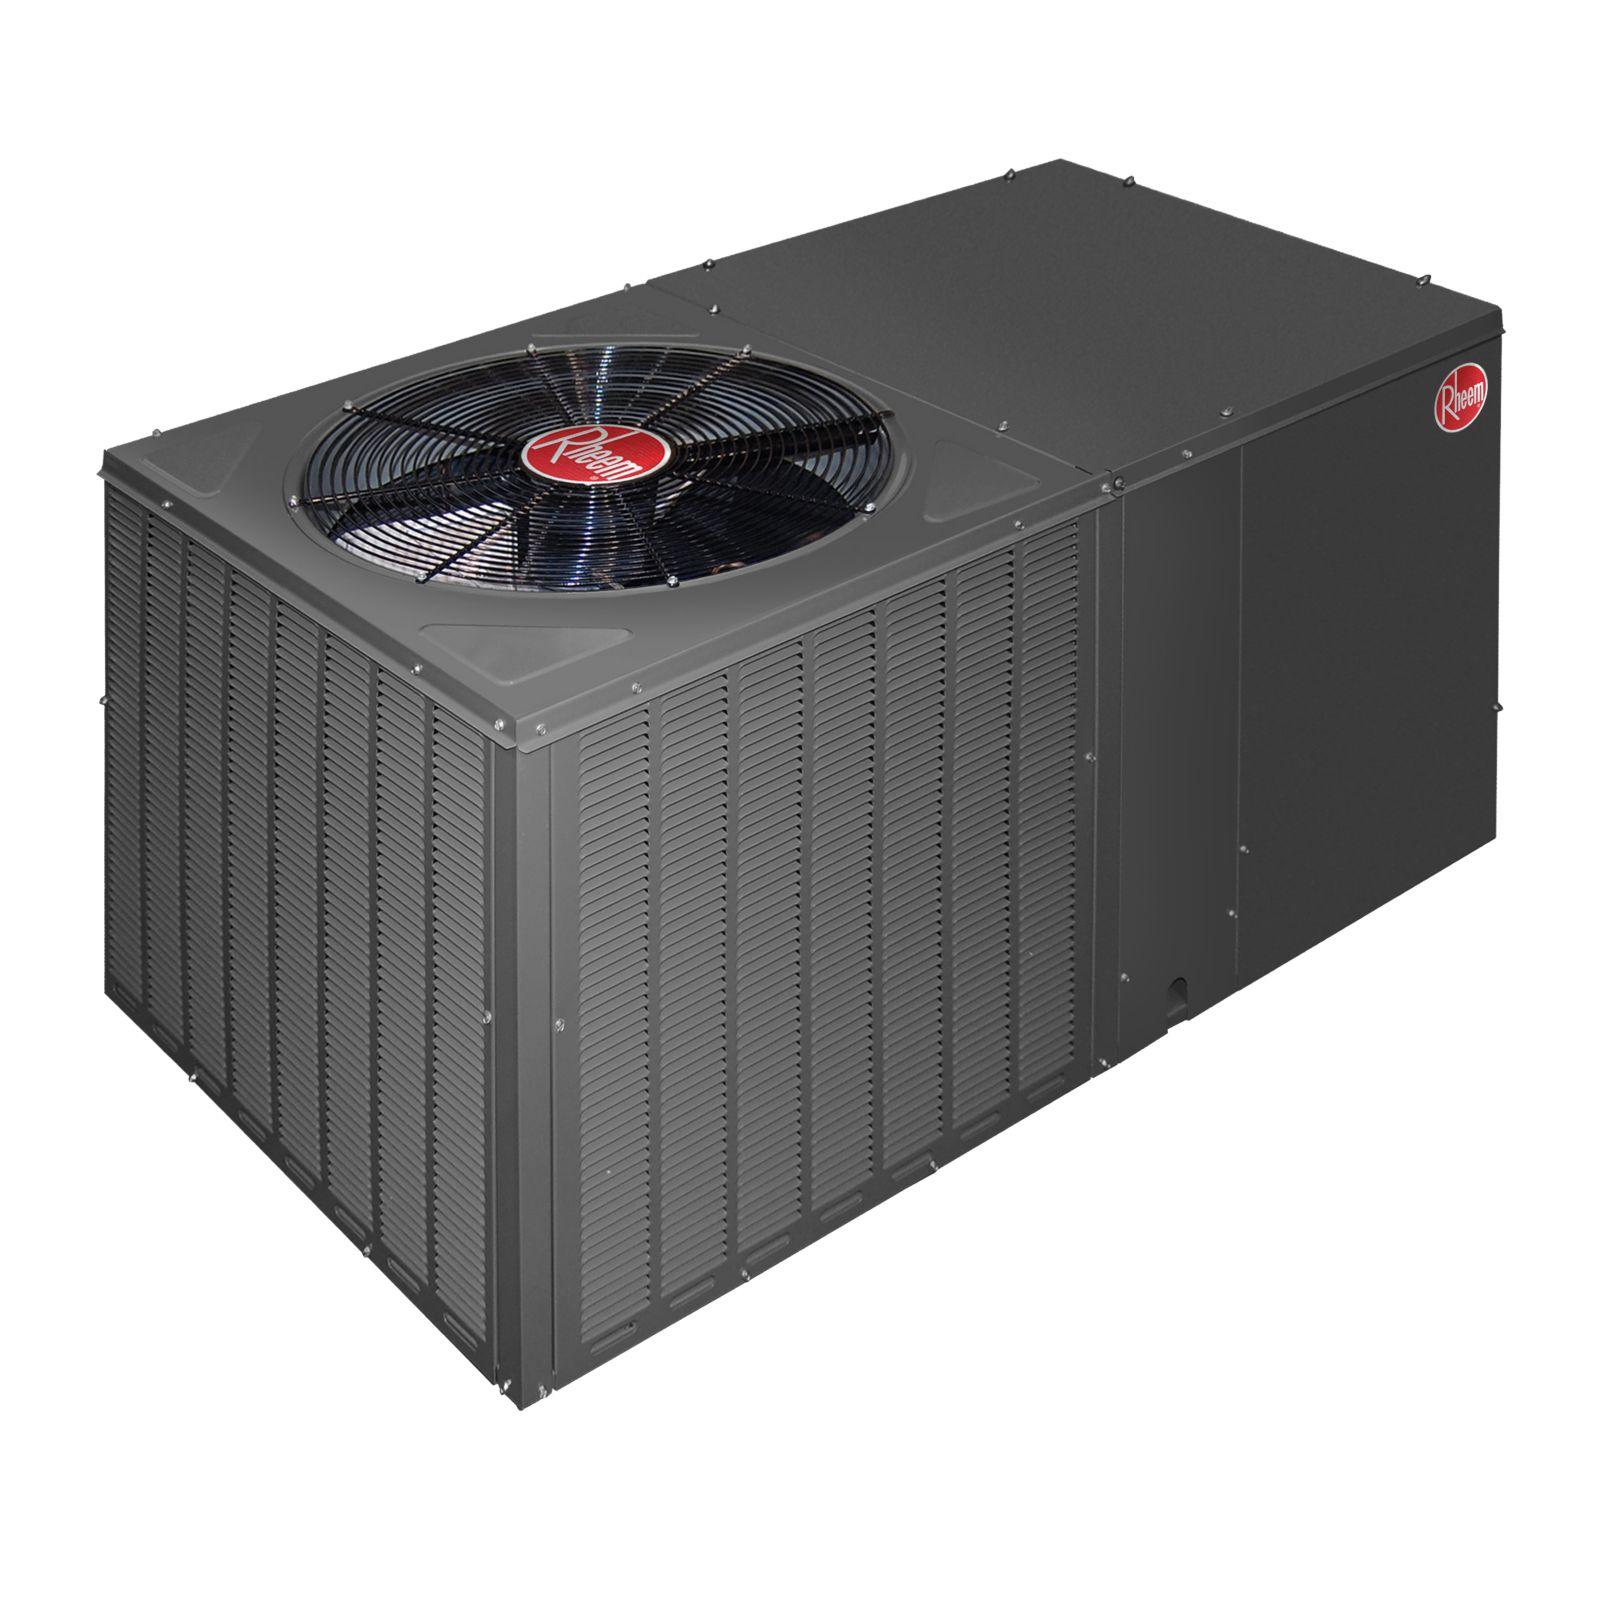 Rheem RSPM-A030JK000 - Classic 2 1/2 Ton, 14 SEER, Packaged Air Conditioner - Dedicated Horizontal, 208-230 V, 1 Ph, 60 Hz